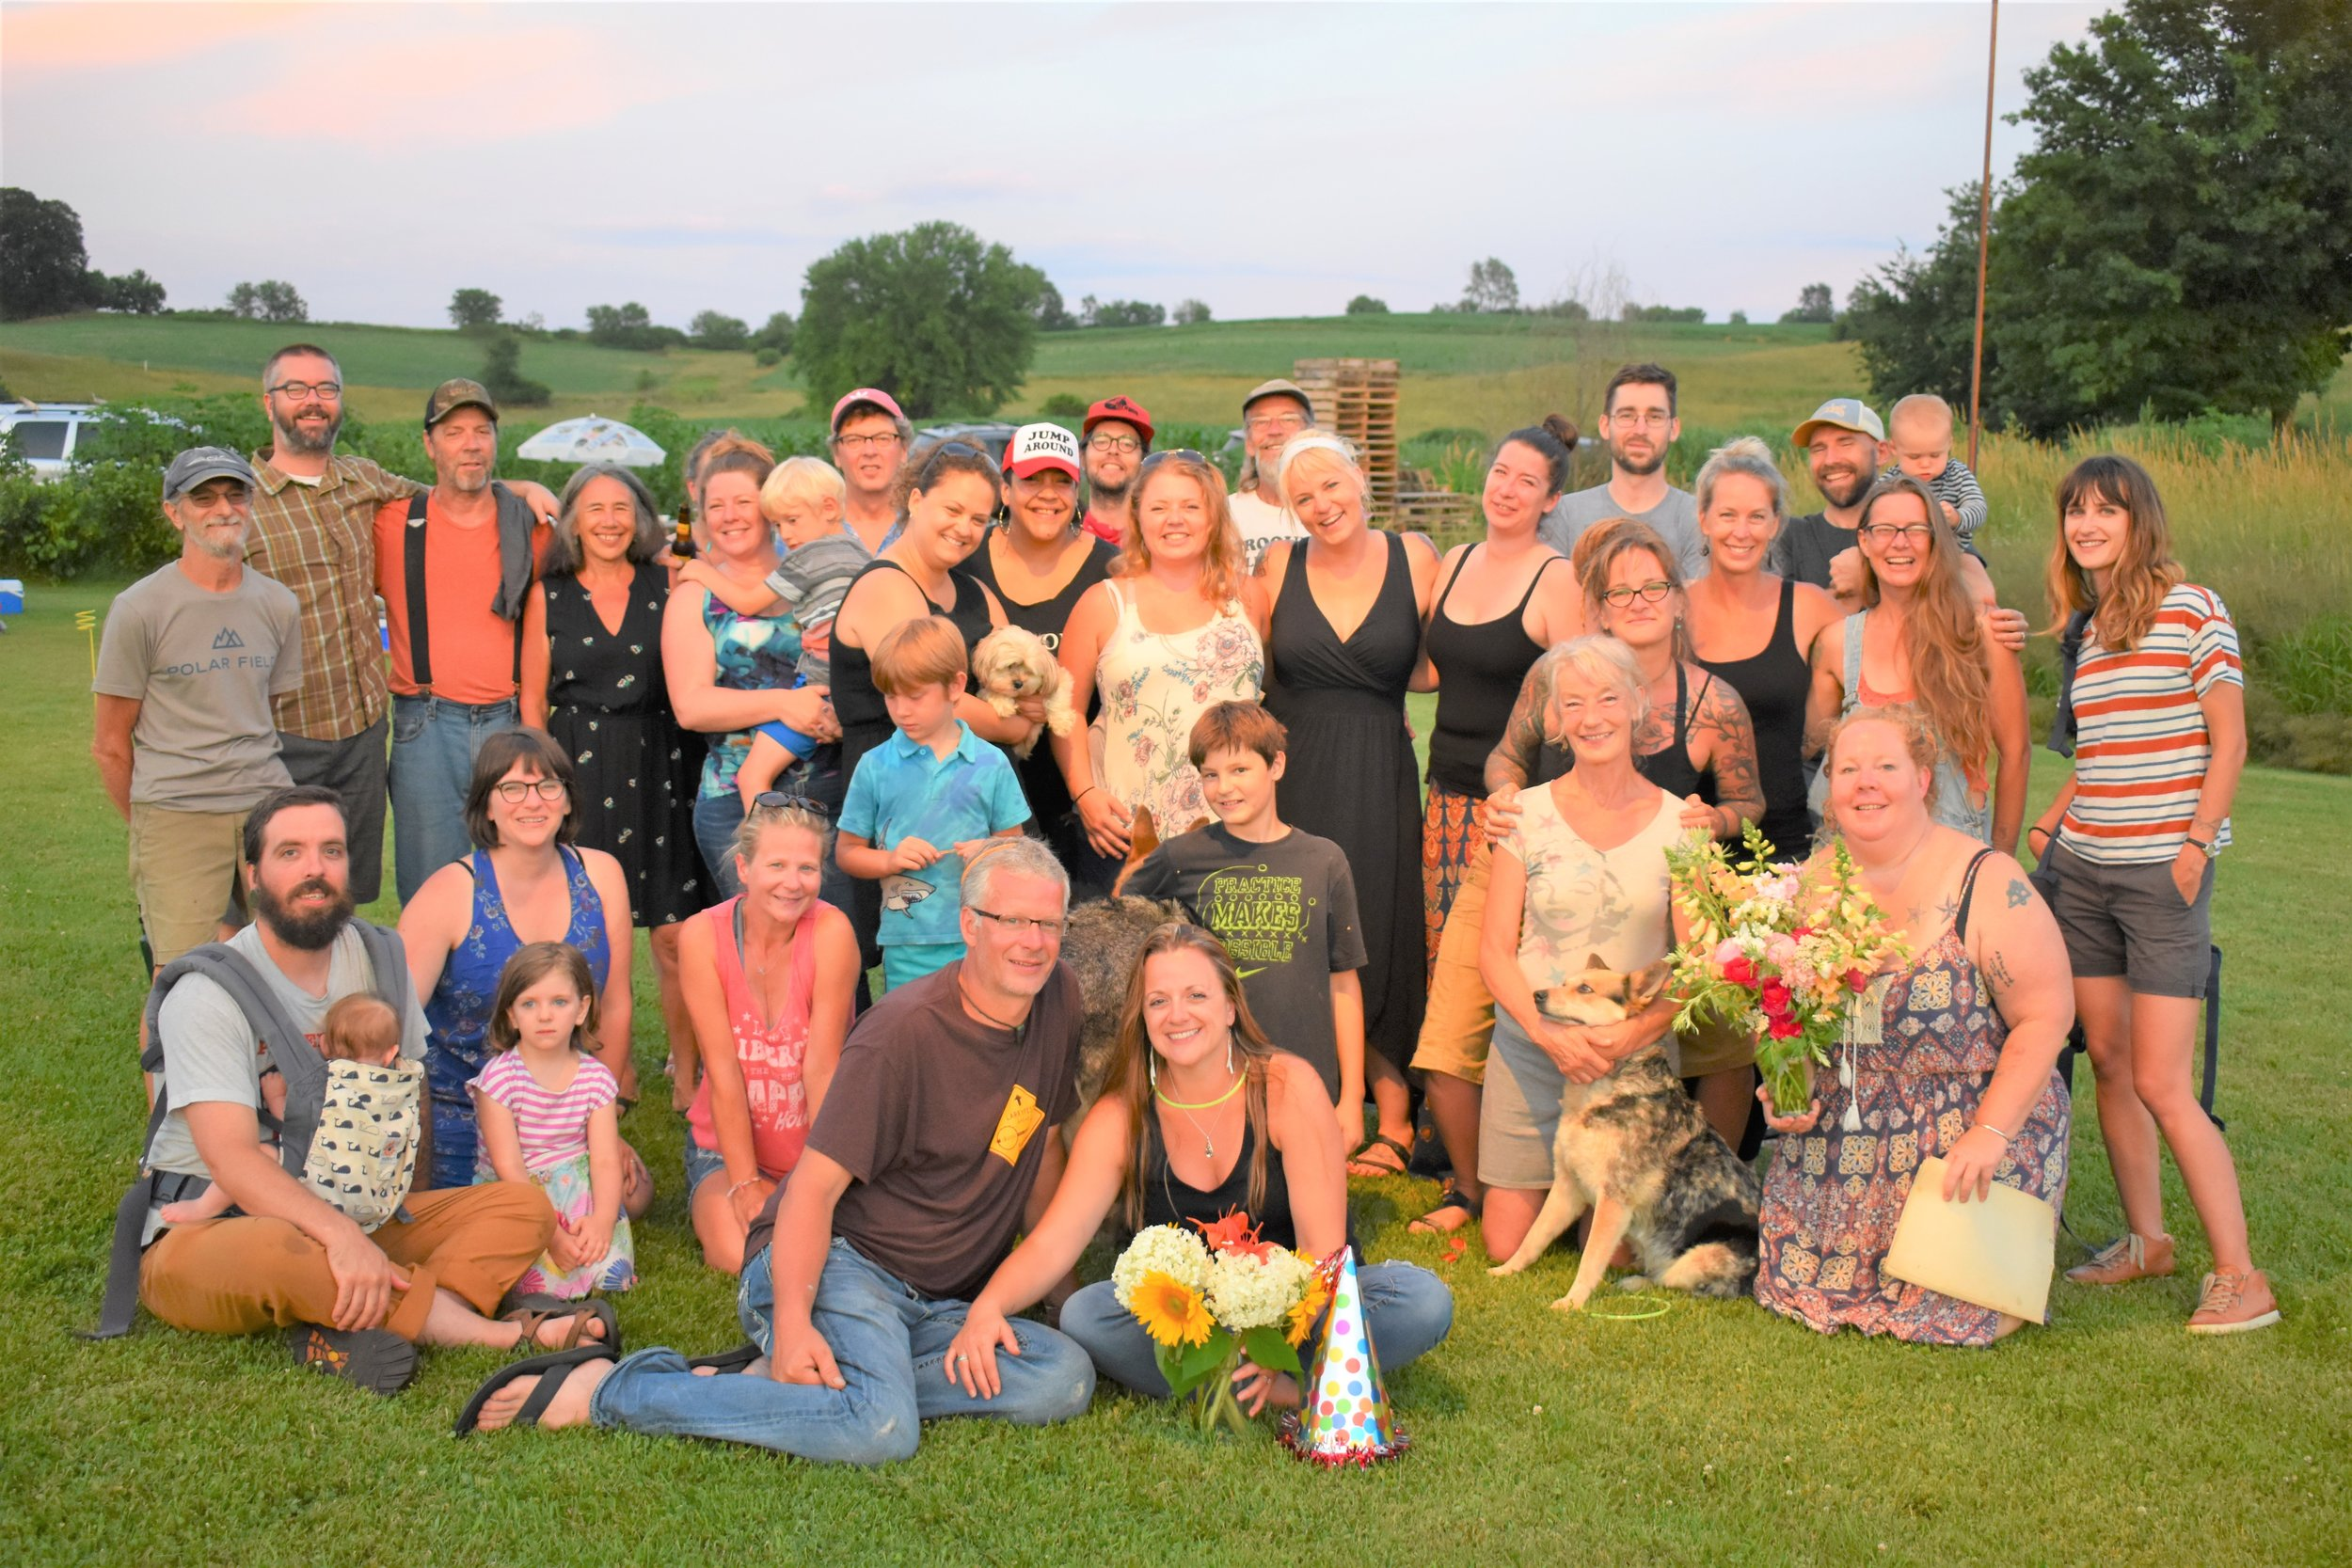 Some of the Kickapoo Valley Croquet Club. In front and center, l to r are Kya and Fiance Morgan, who happened to be celebrating a birthday that evening.